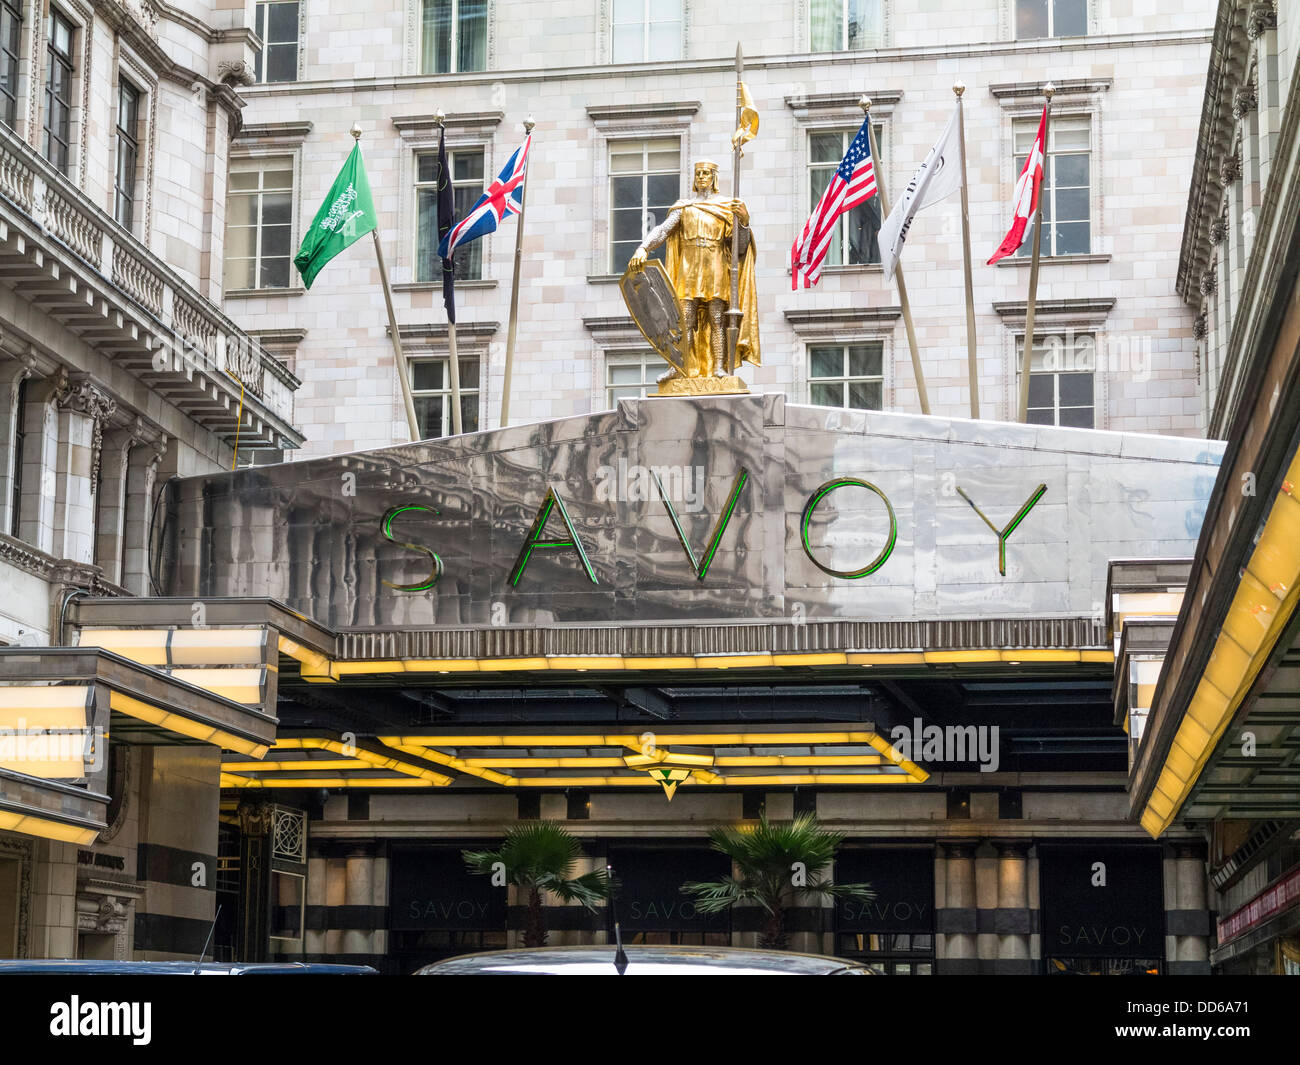 The Savoy hotel, London - Stock Image